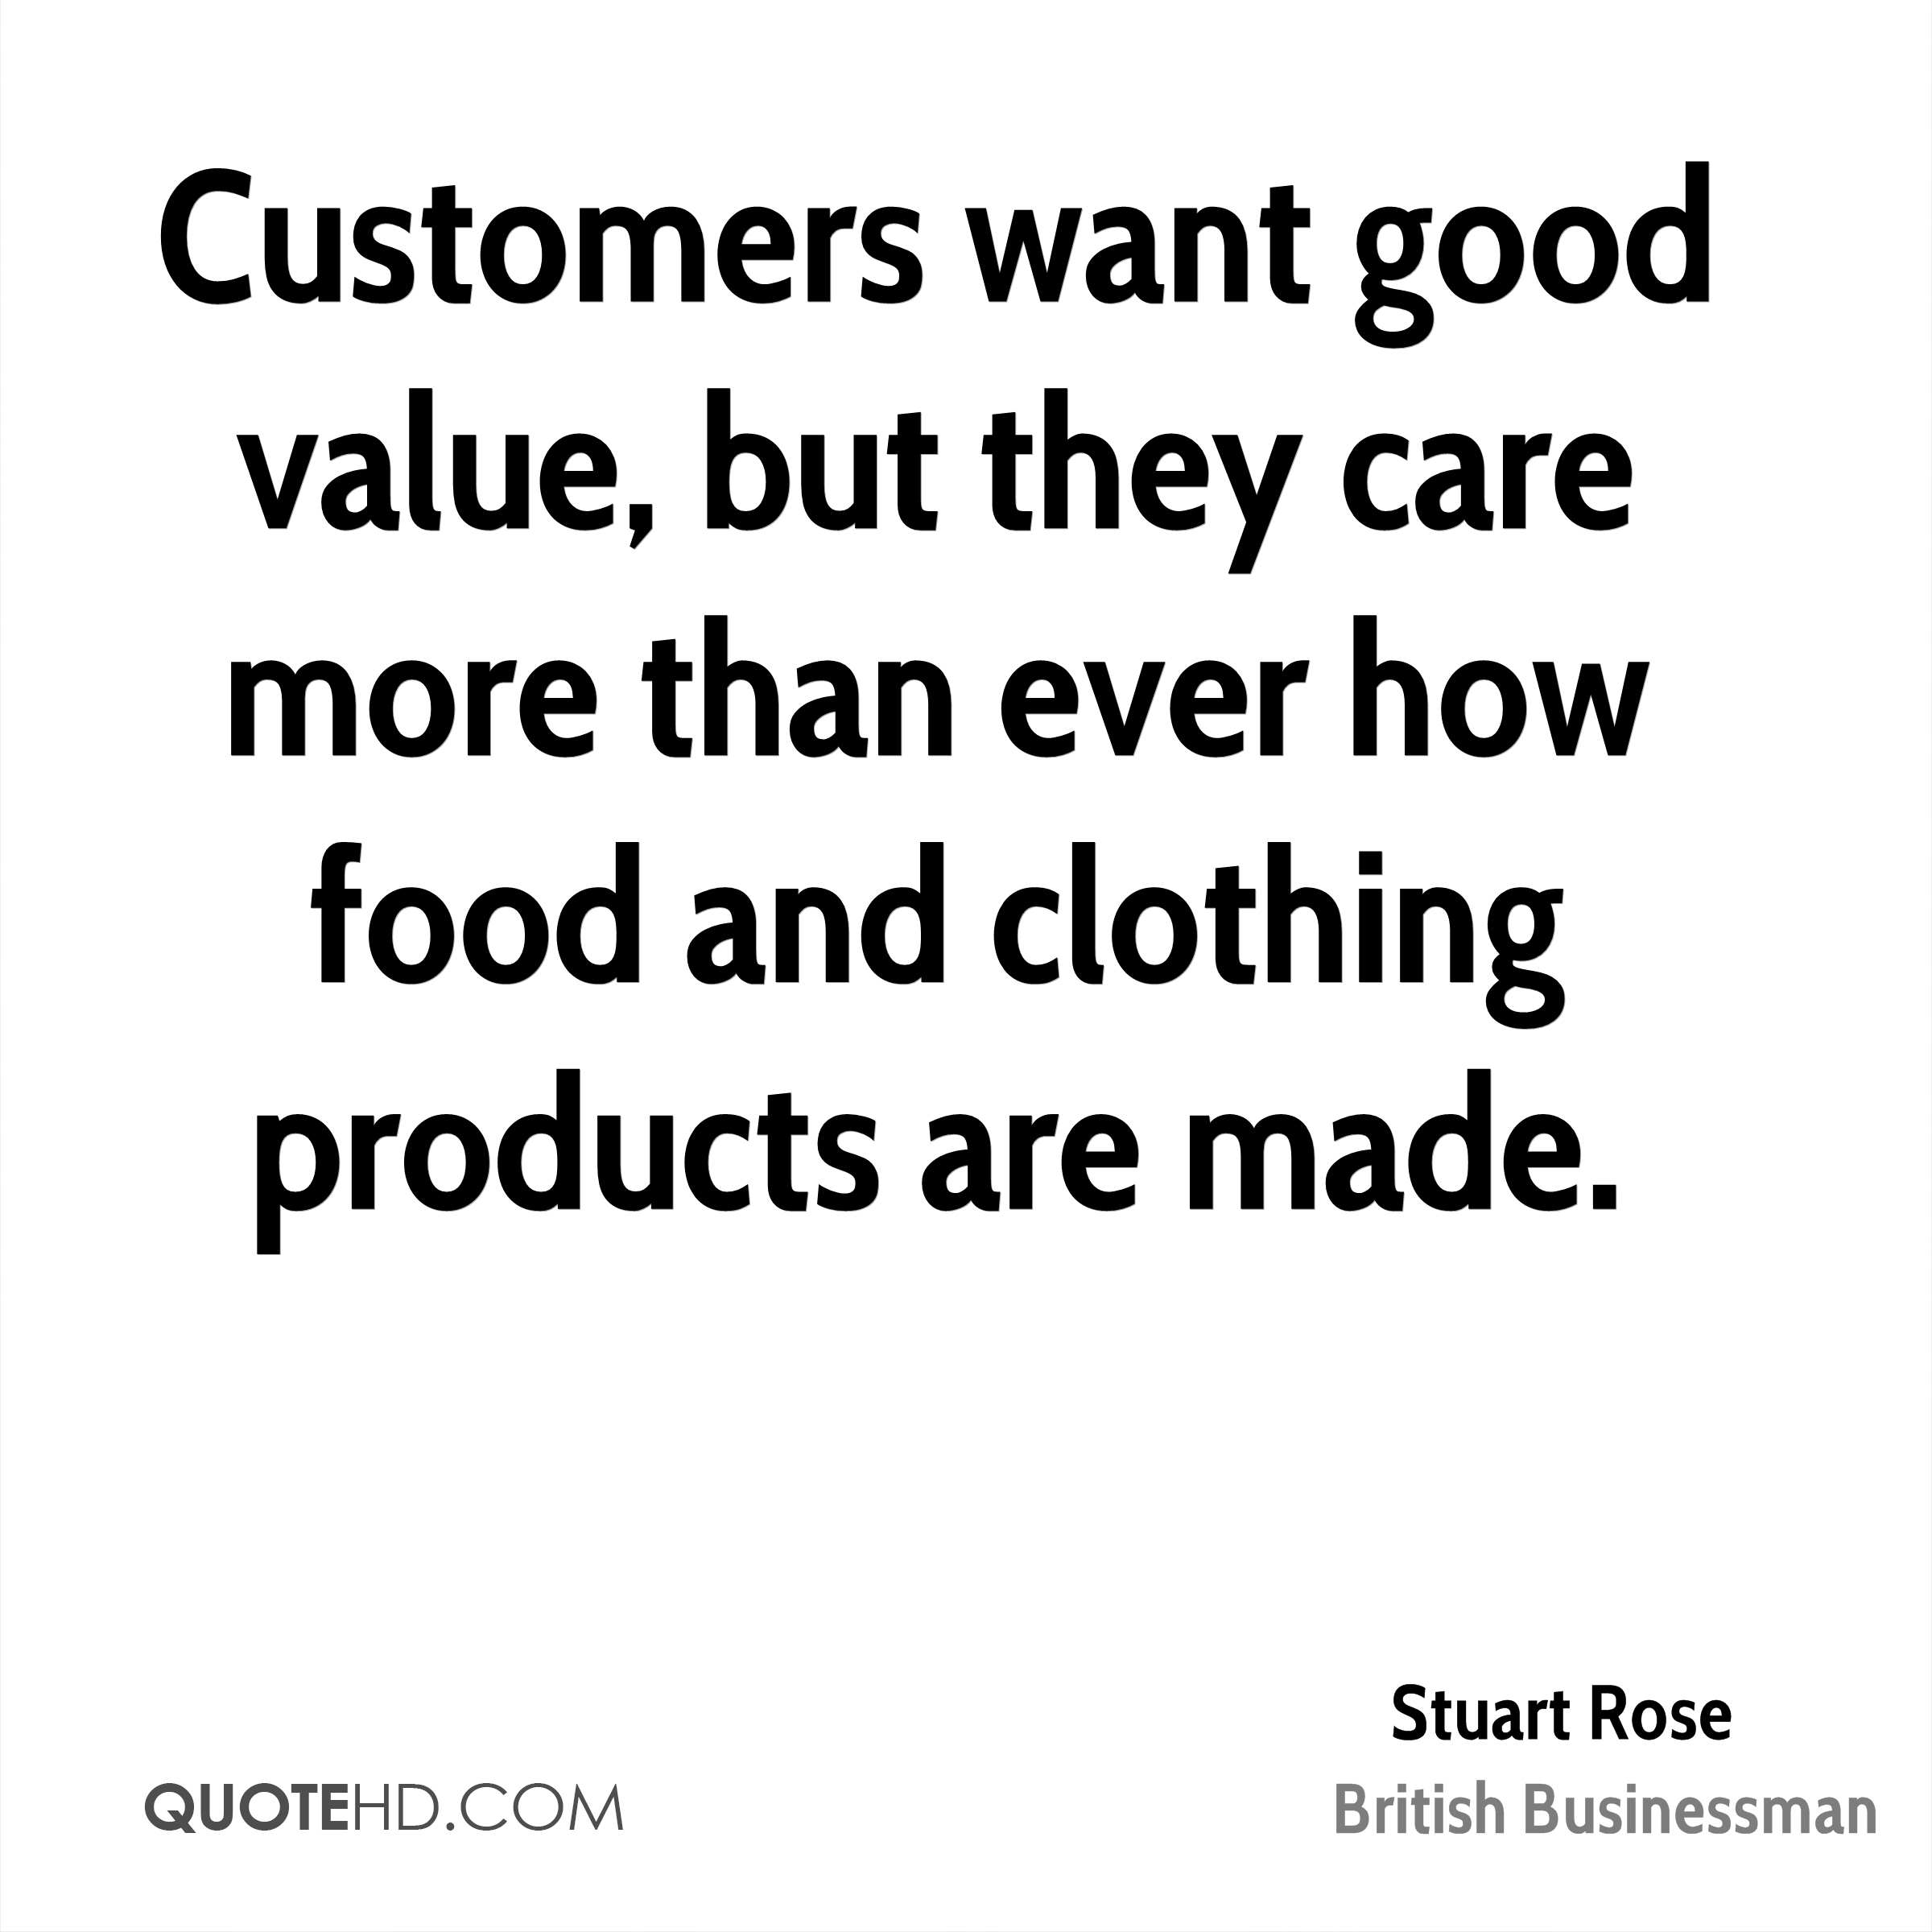 Customers want good value, but they care more than ever how food and clothing products are made.